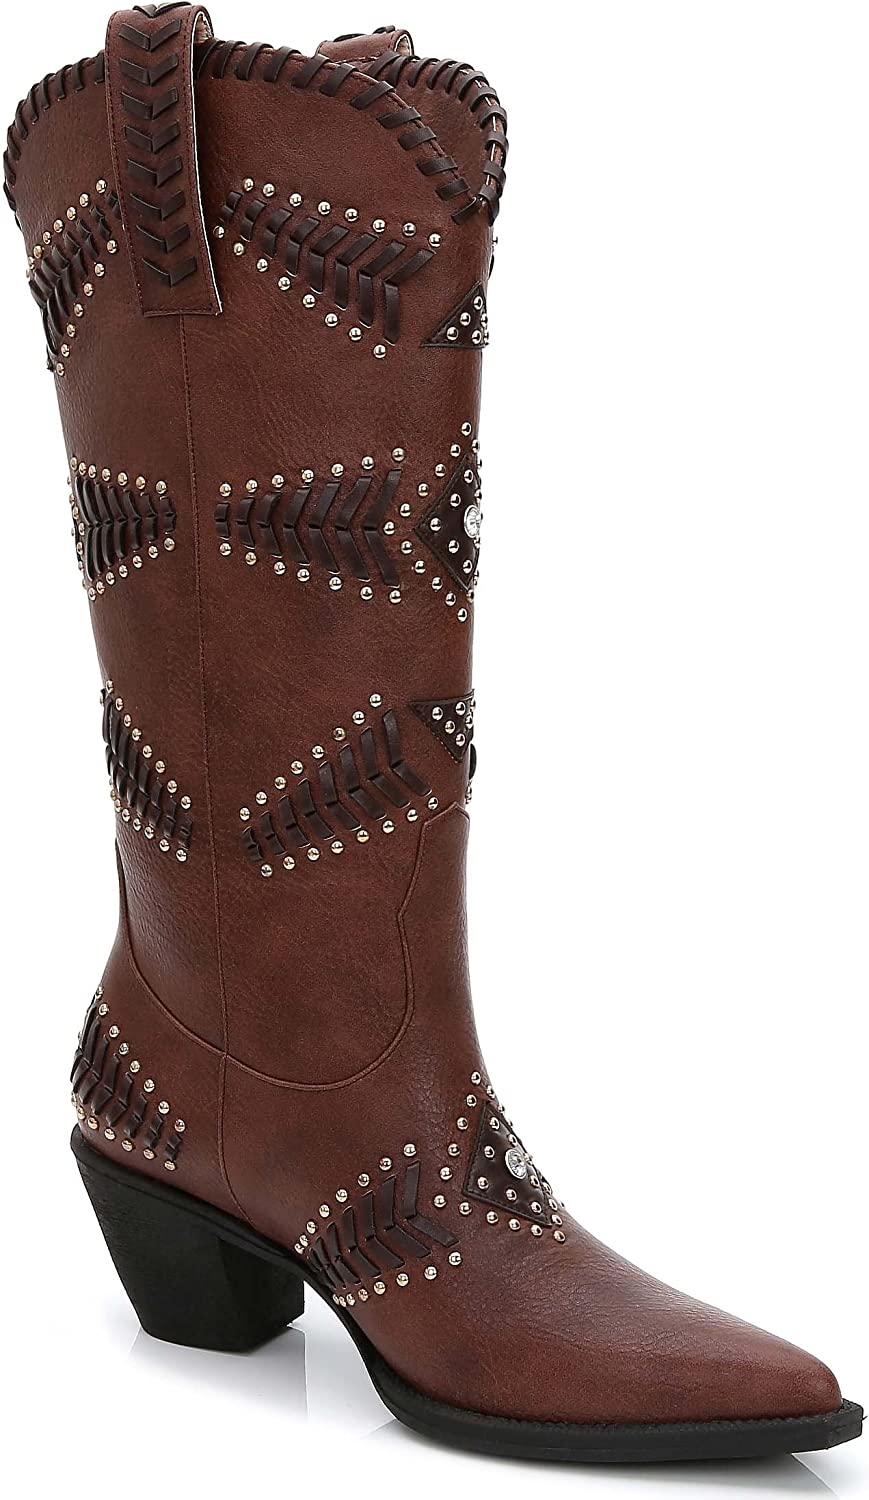 Ann Creek Women's 'Costa' Rhinestone Stud and Texture Boots Genuine Free Shipping Selling rankings